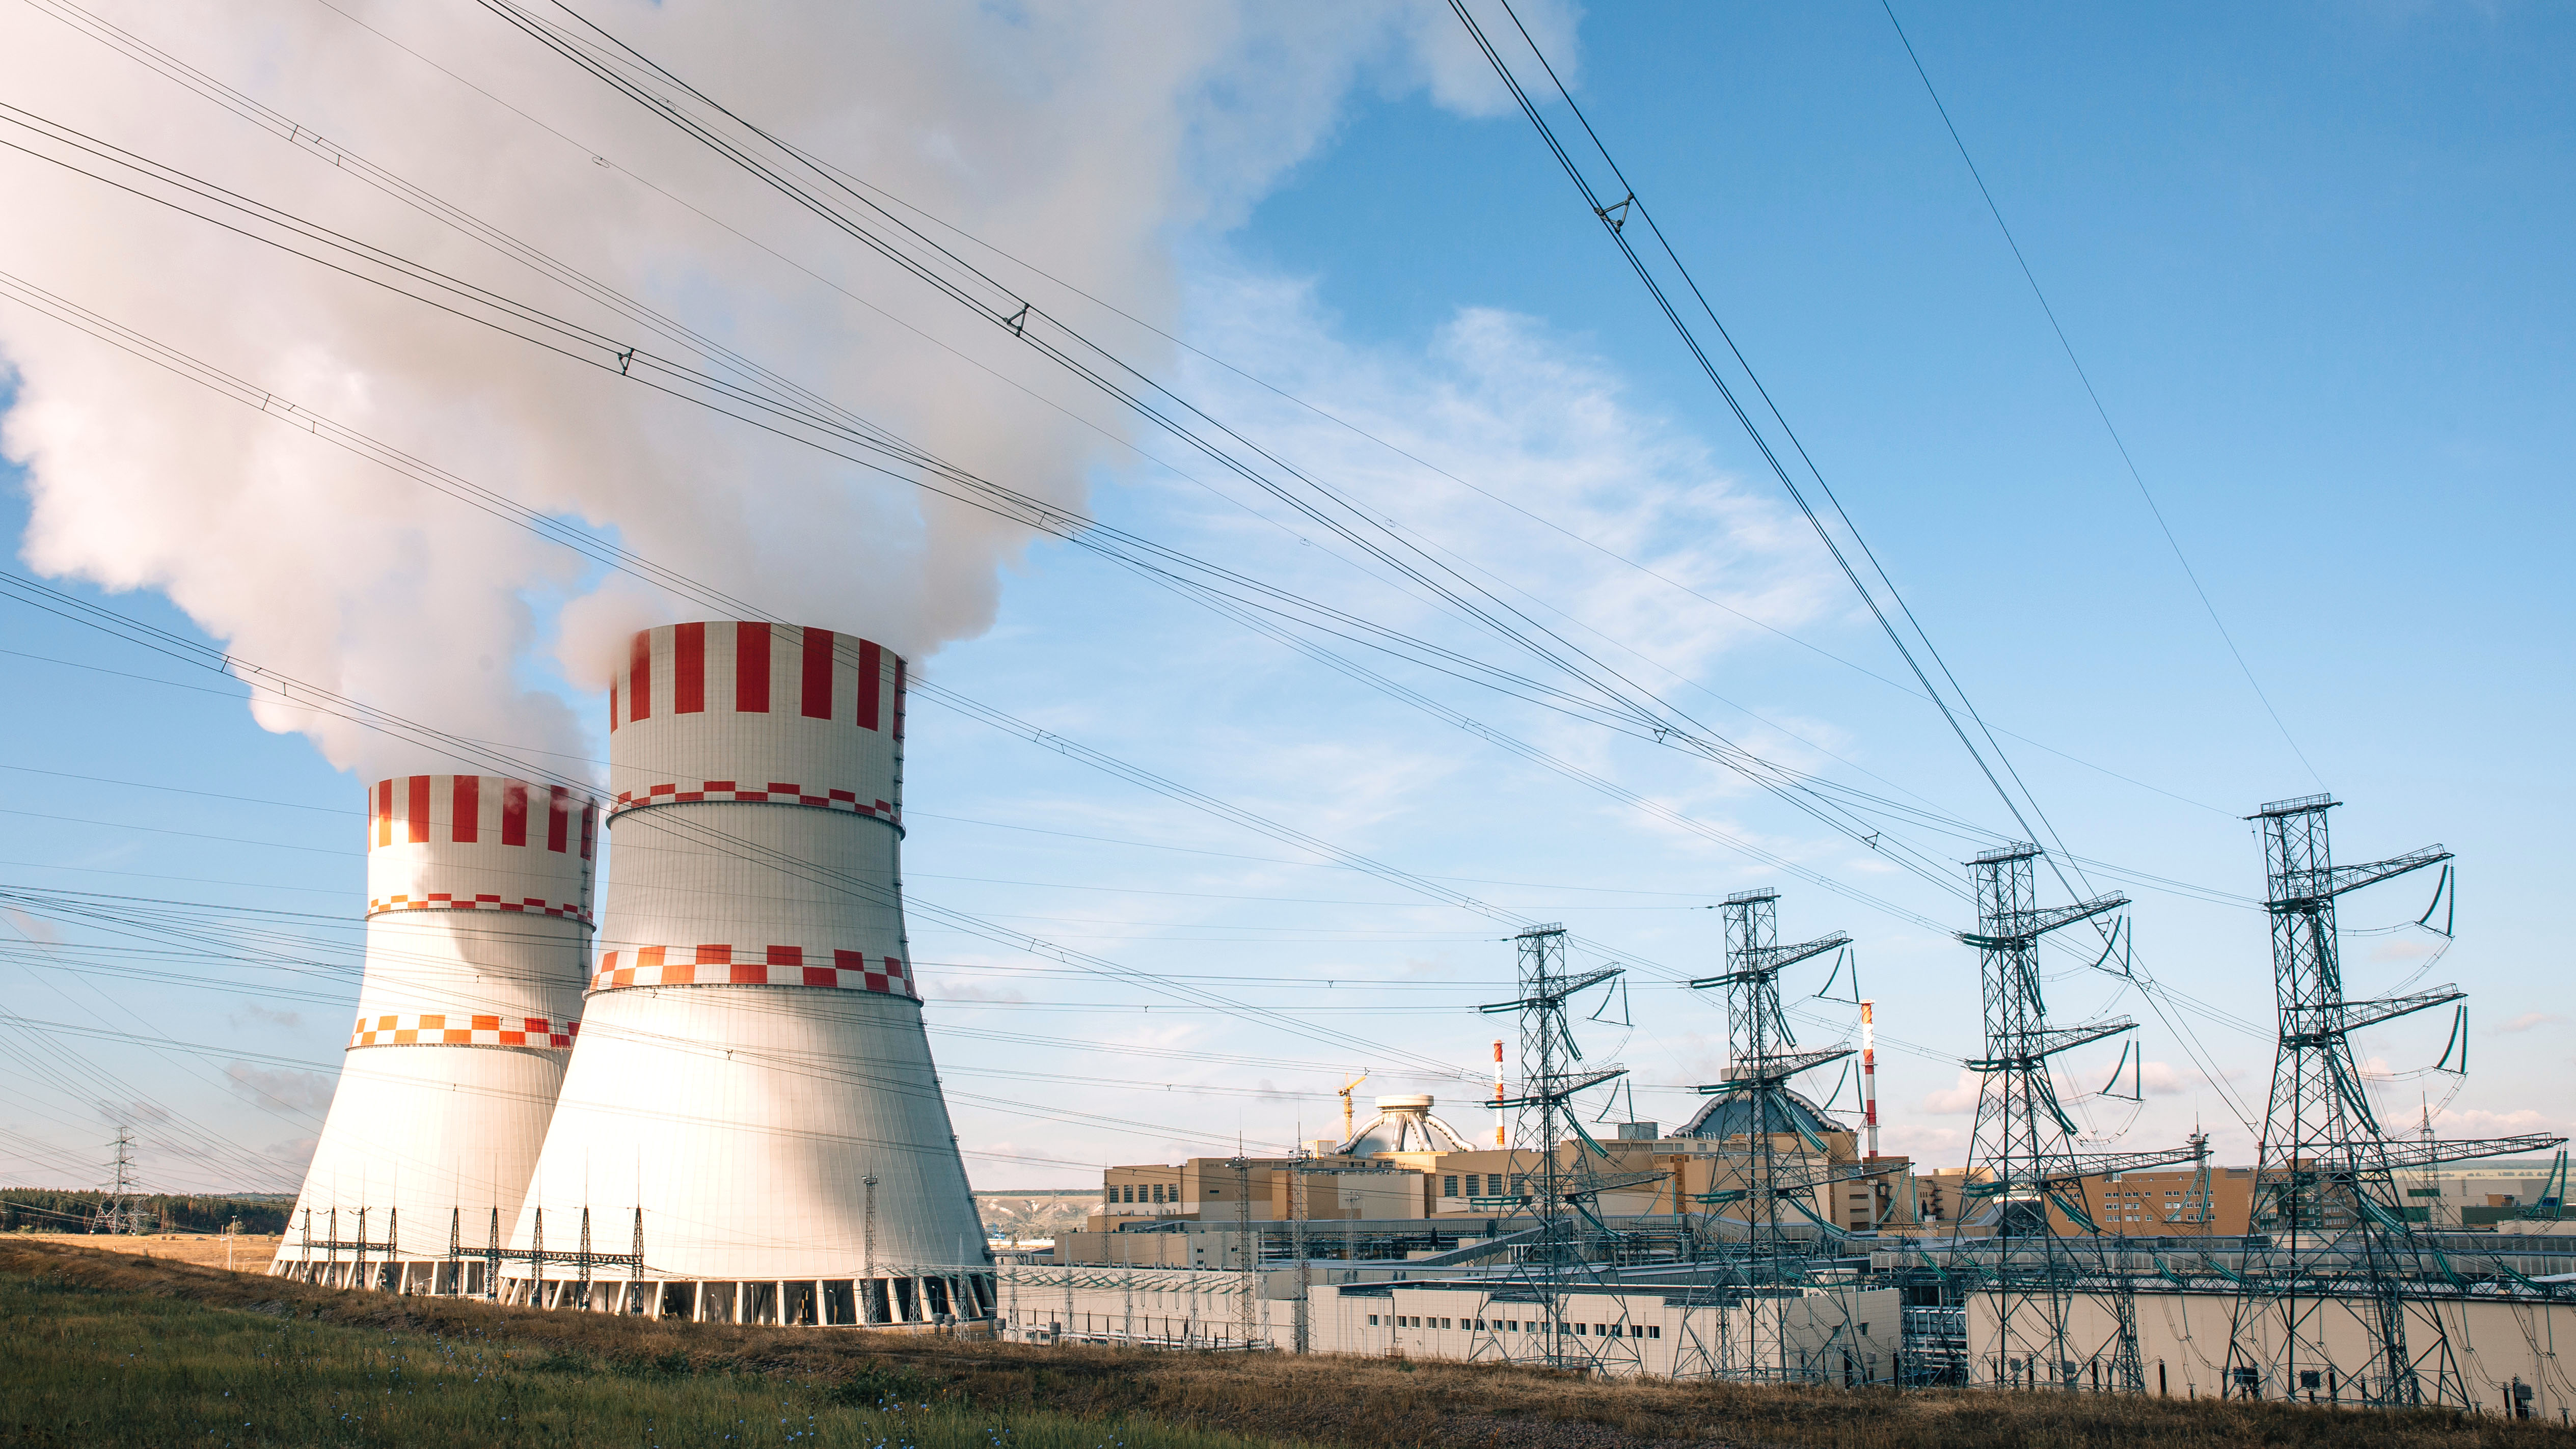 Rosenergoatom: Novovoronezh-2 NPP's newest power unit enters commercial operation 30 days ahead of schedule